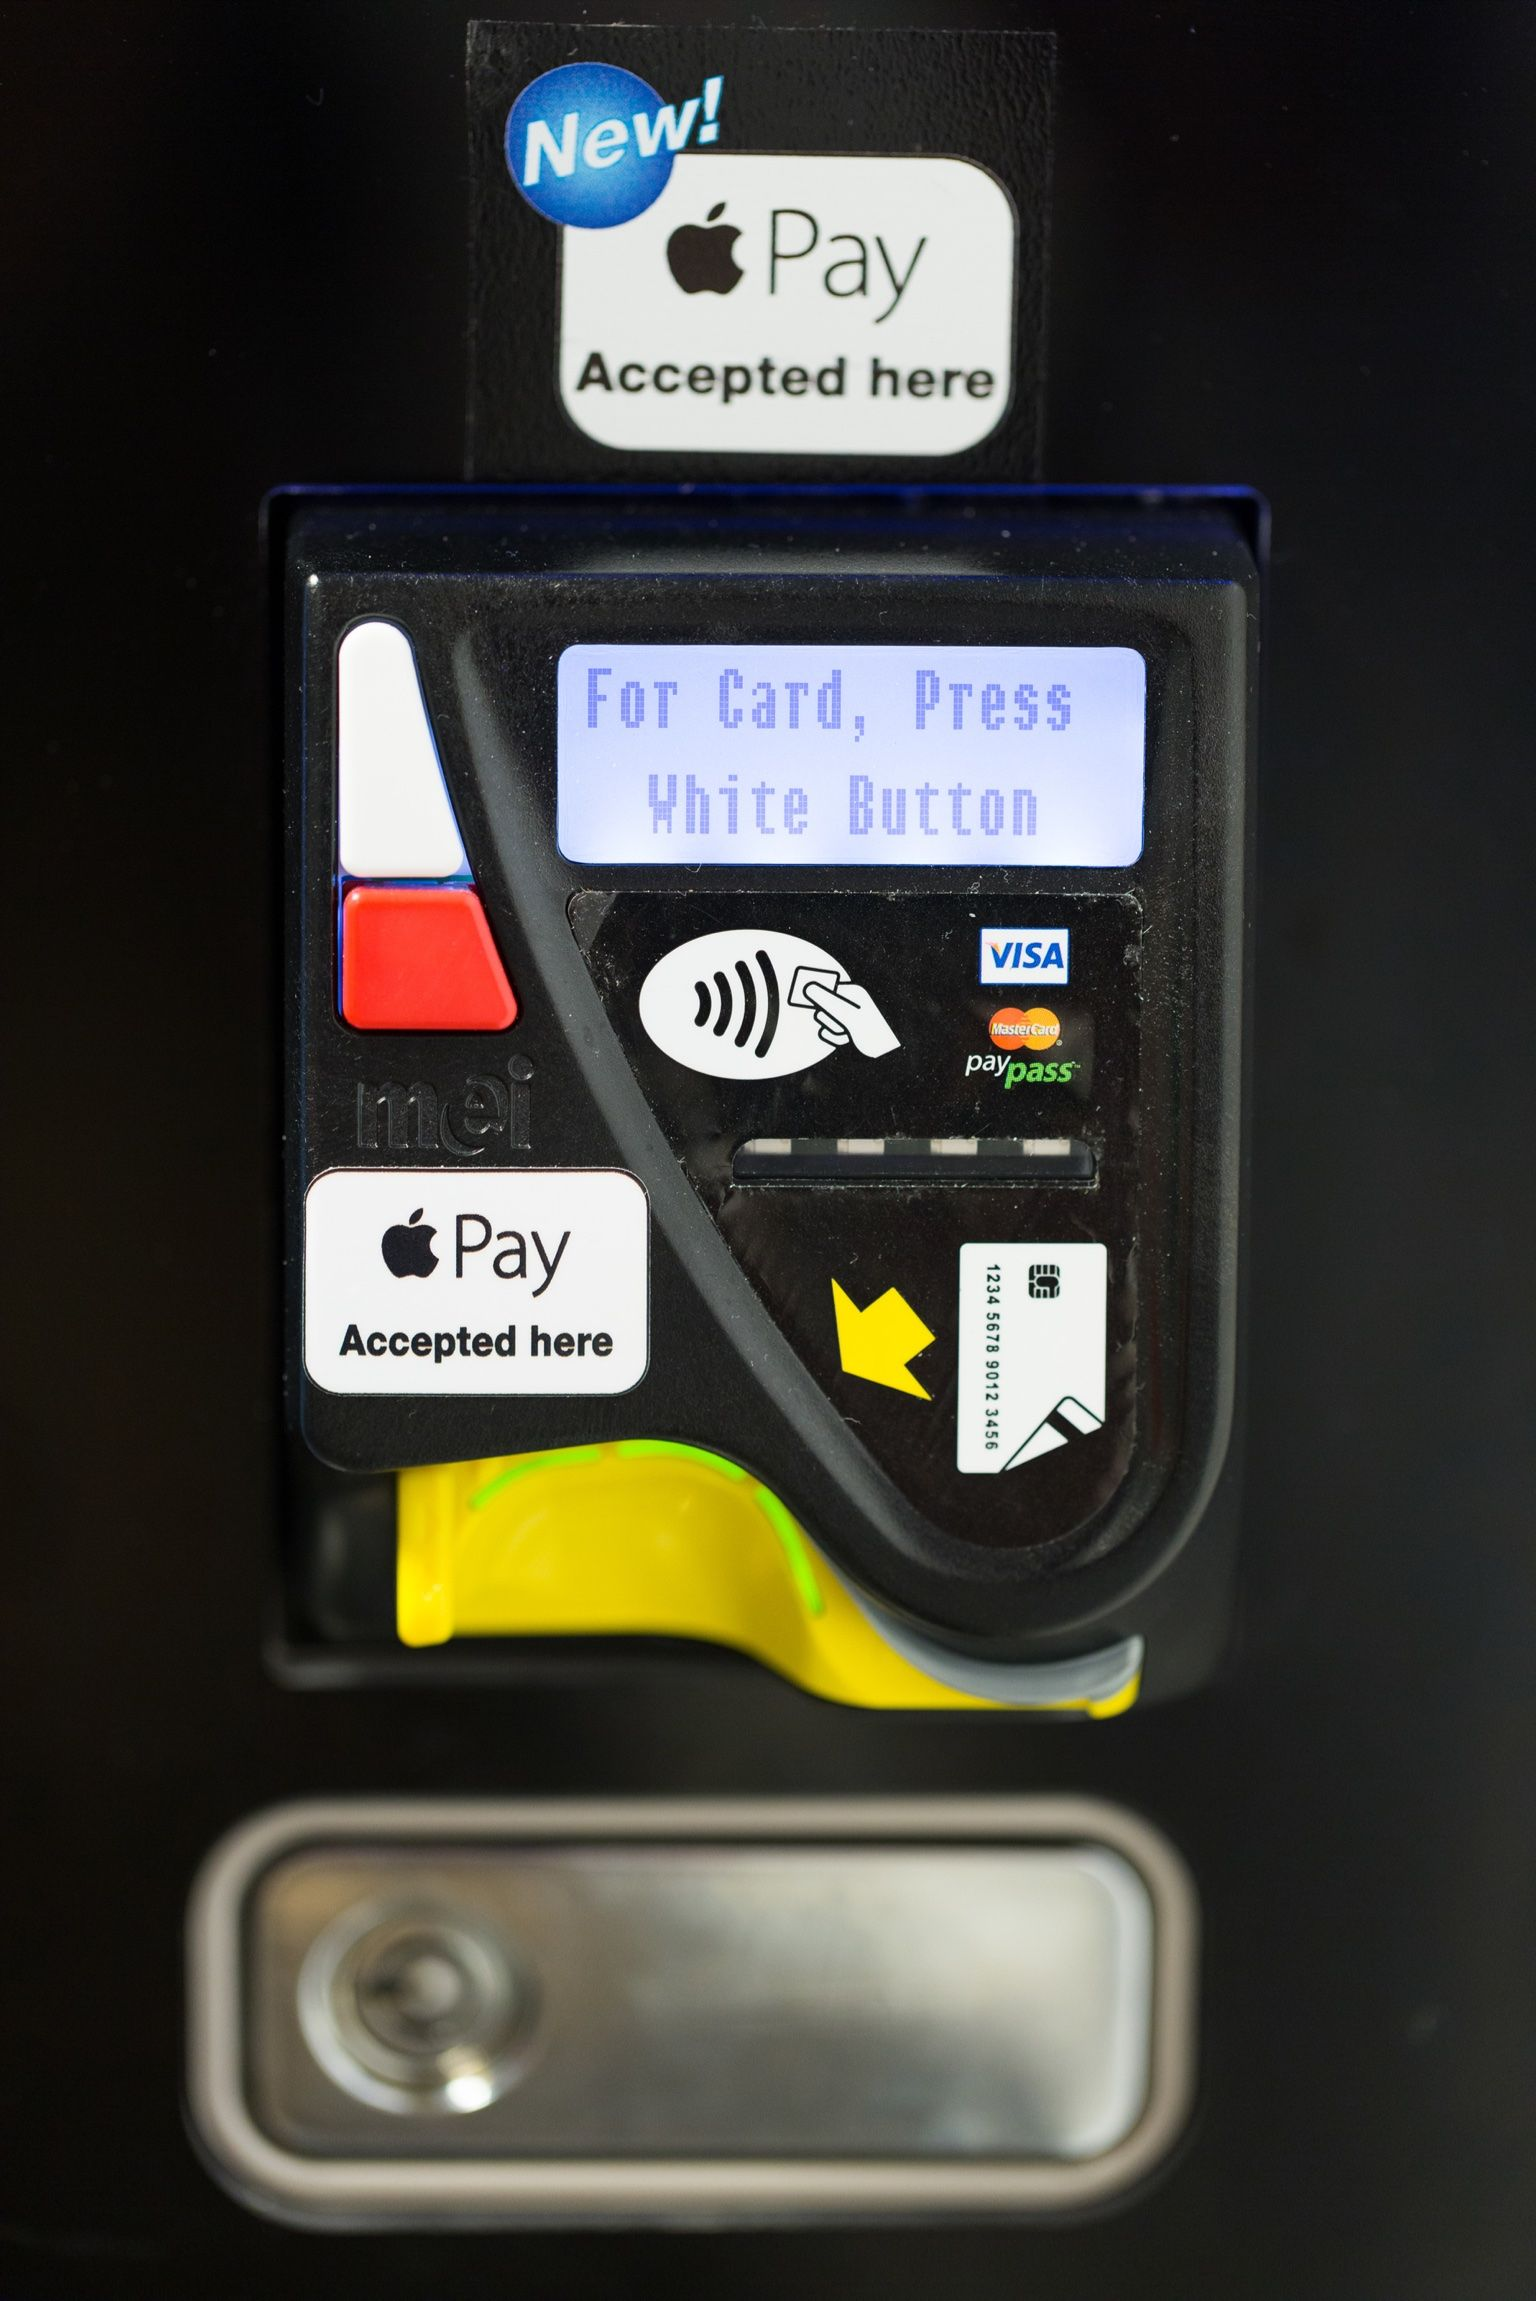 Apple pay, contactless payment systems on all our media